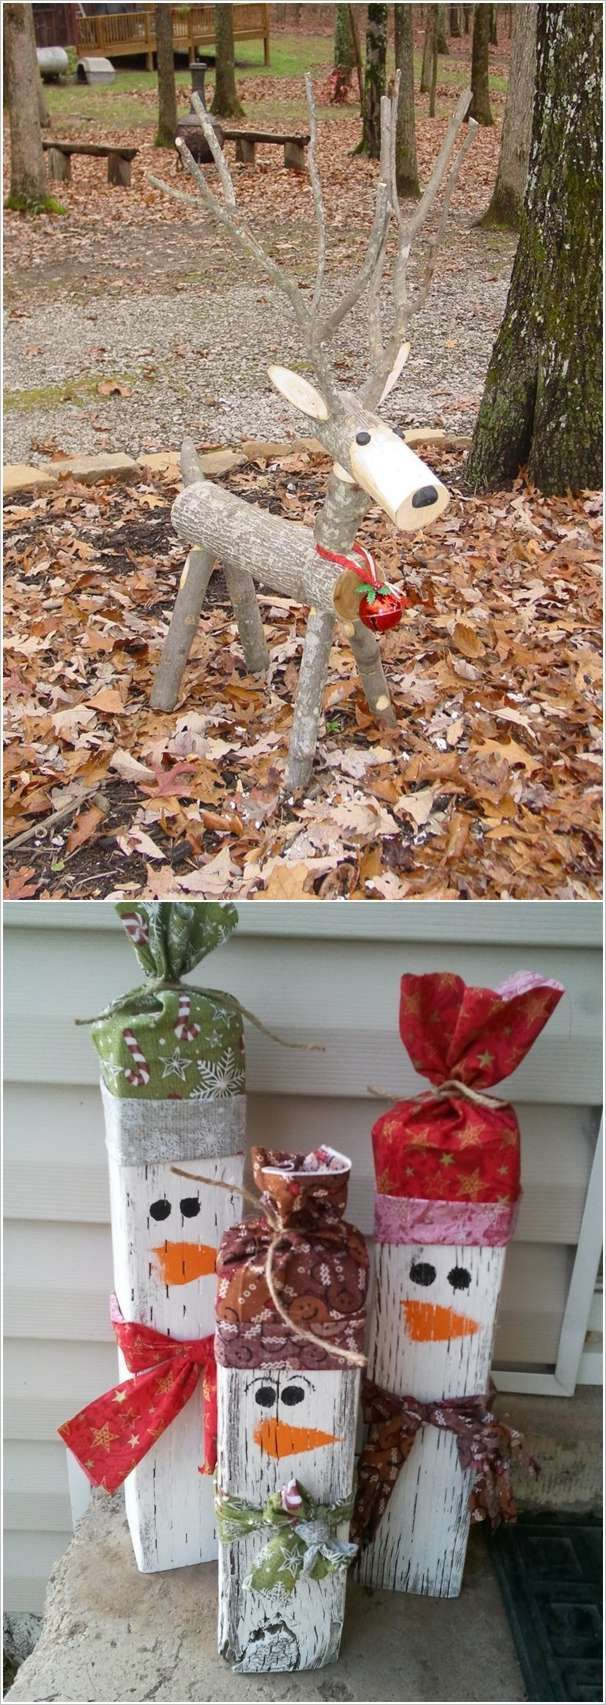 Wooden outdoor christmas decorations - I Need To Diy These Beautiful Rustic Outdoor Wooden Decorations